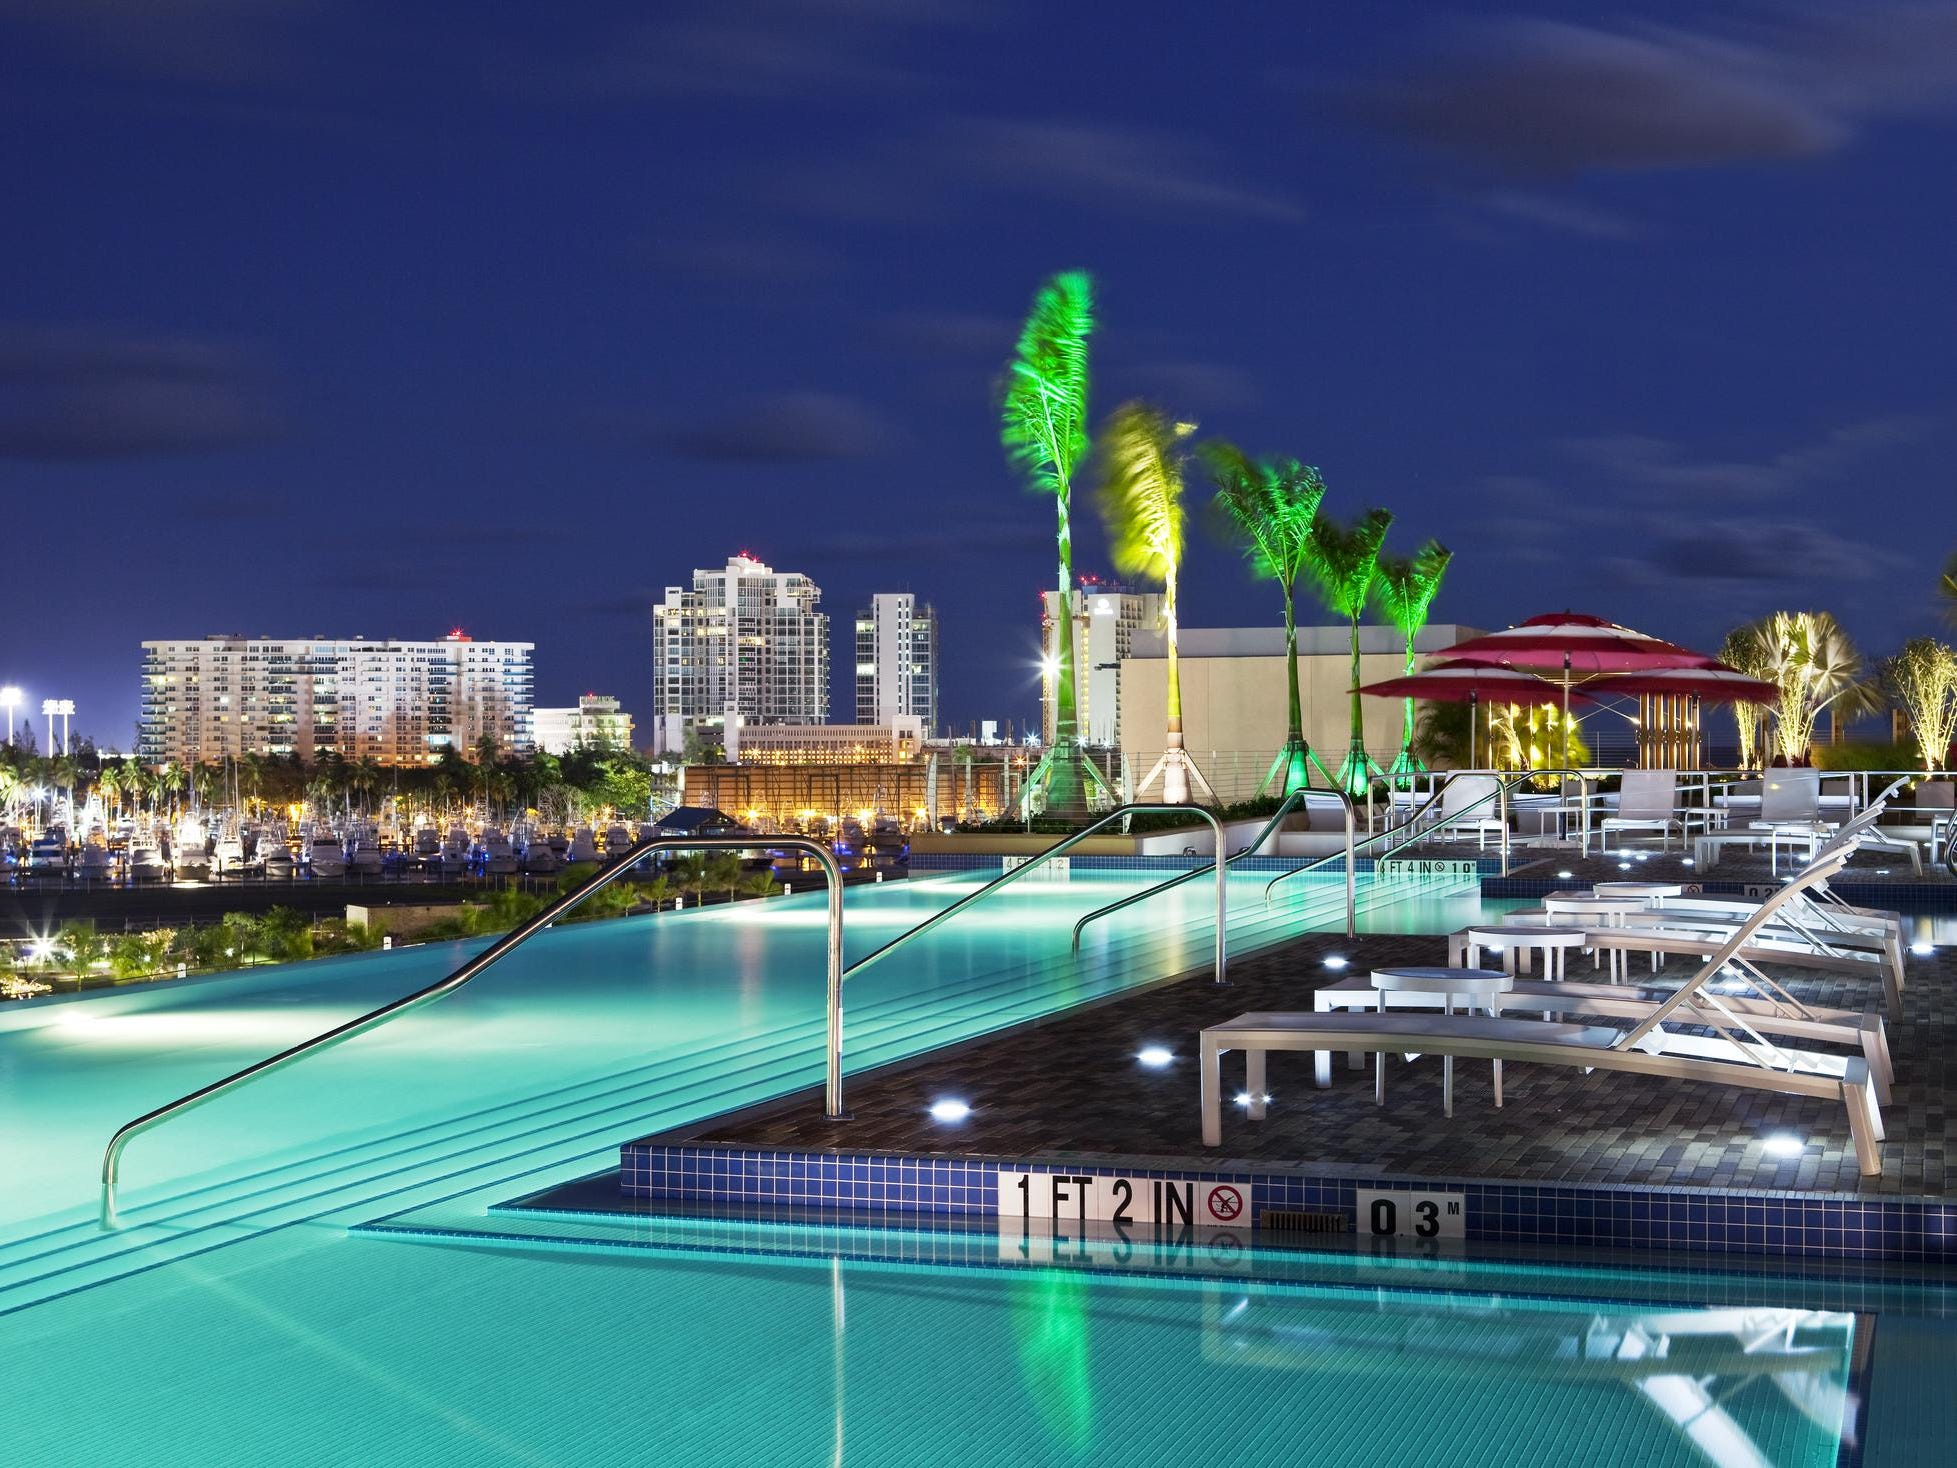 The infinity-edge pool at Sheraton Puerto Rico is the hands-down coolest rooftop pool on the island.